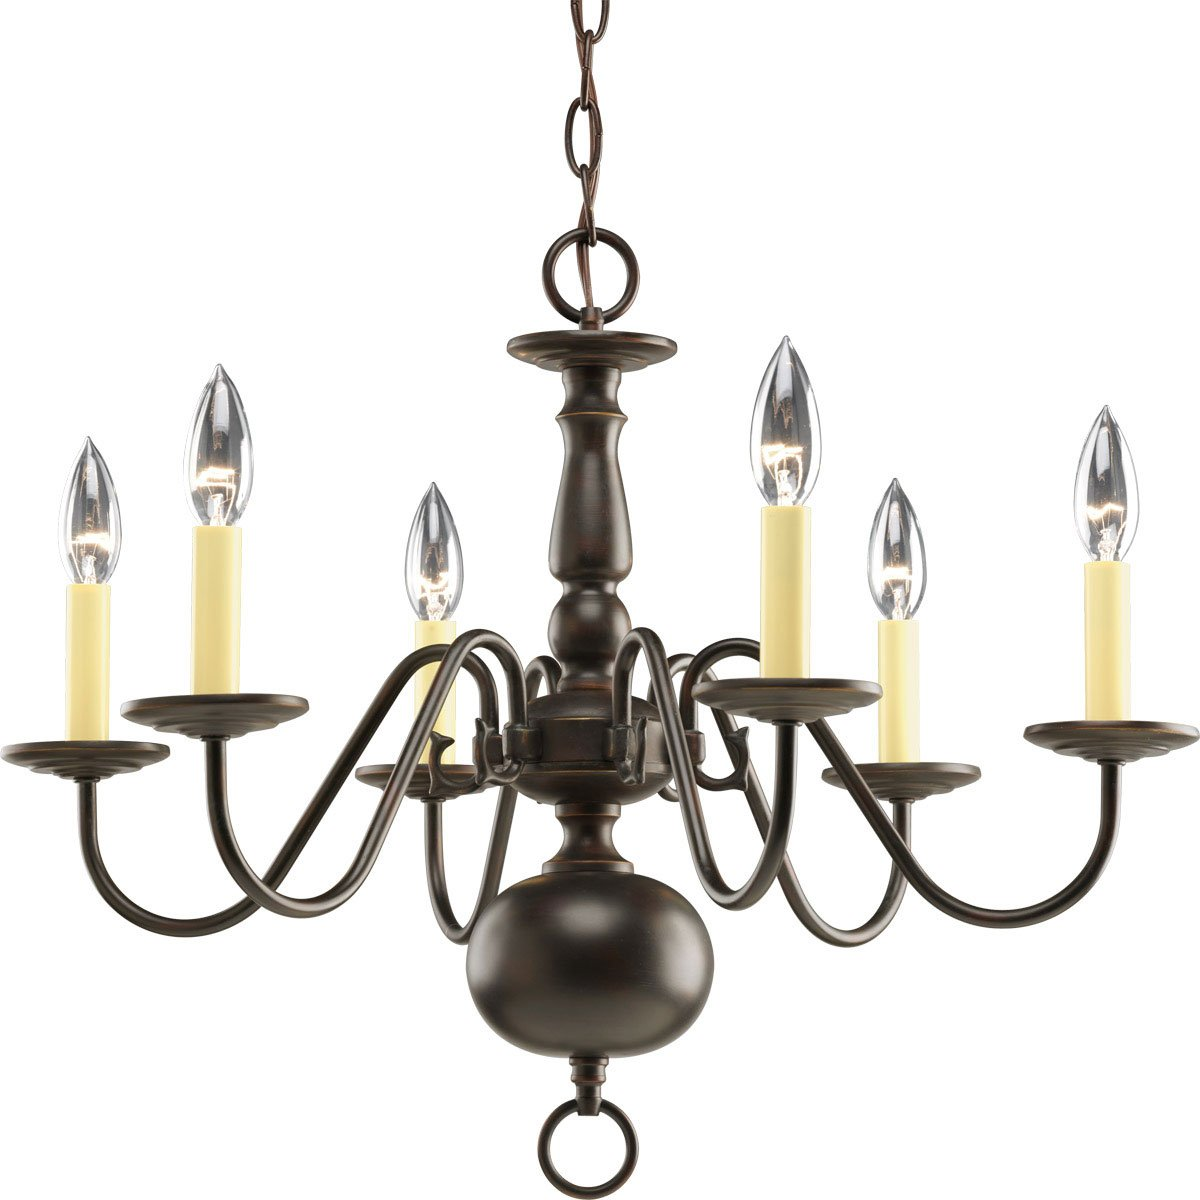 Progress lighting p4356 10 6 light americana chandelier with progress lighting p4356 10 6 light americana chandelier with delicate arms and decorative center column and candelabra lamps polished brass white column arubaitofo Image collections